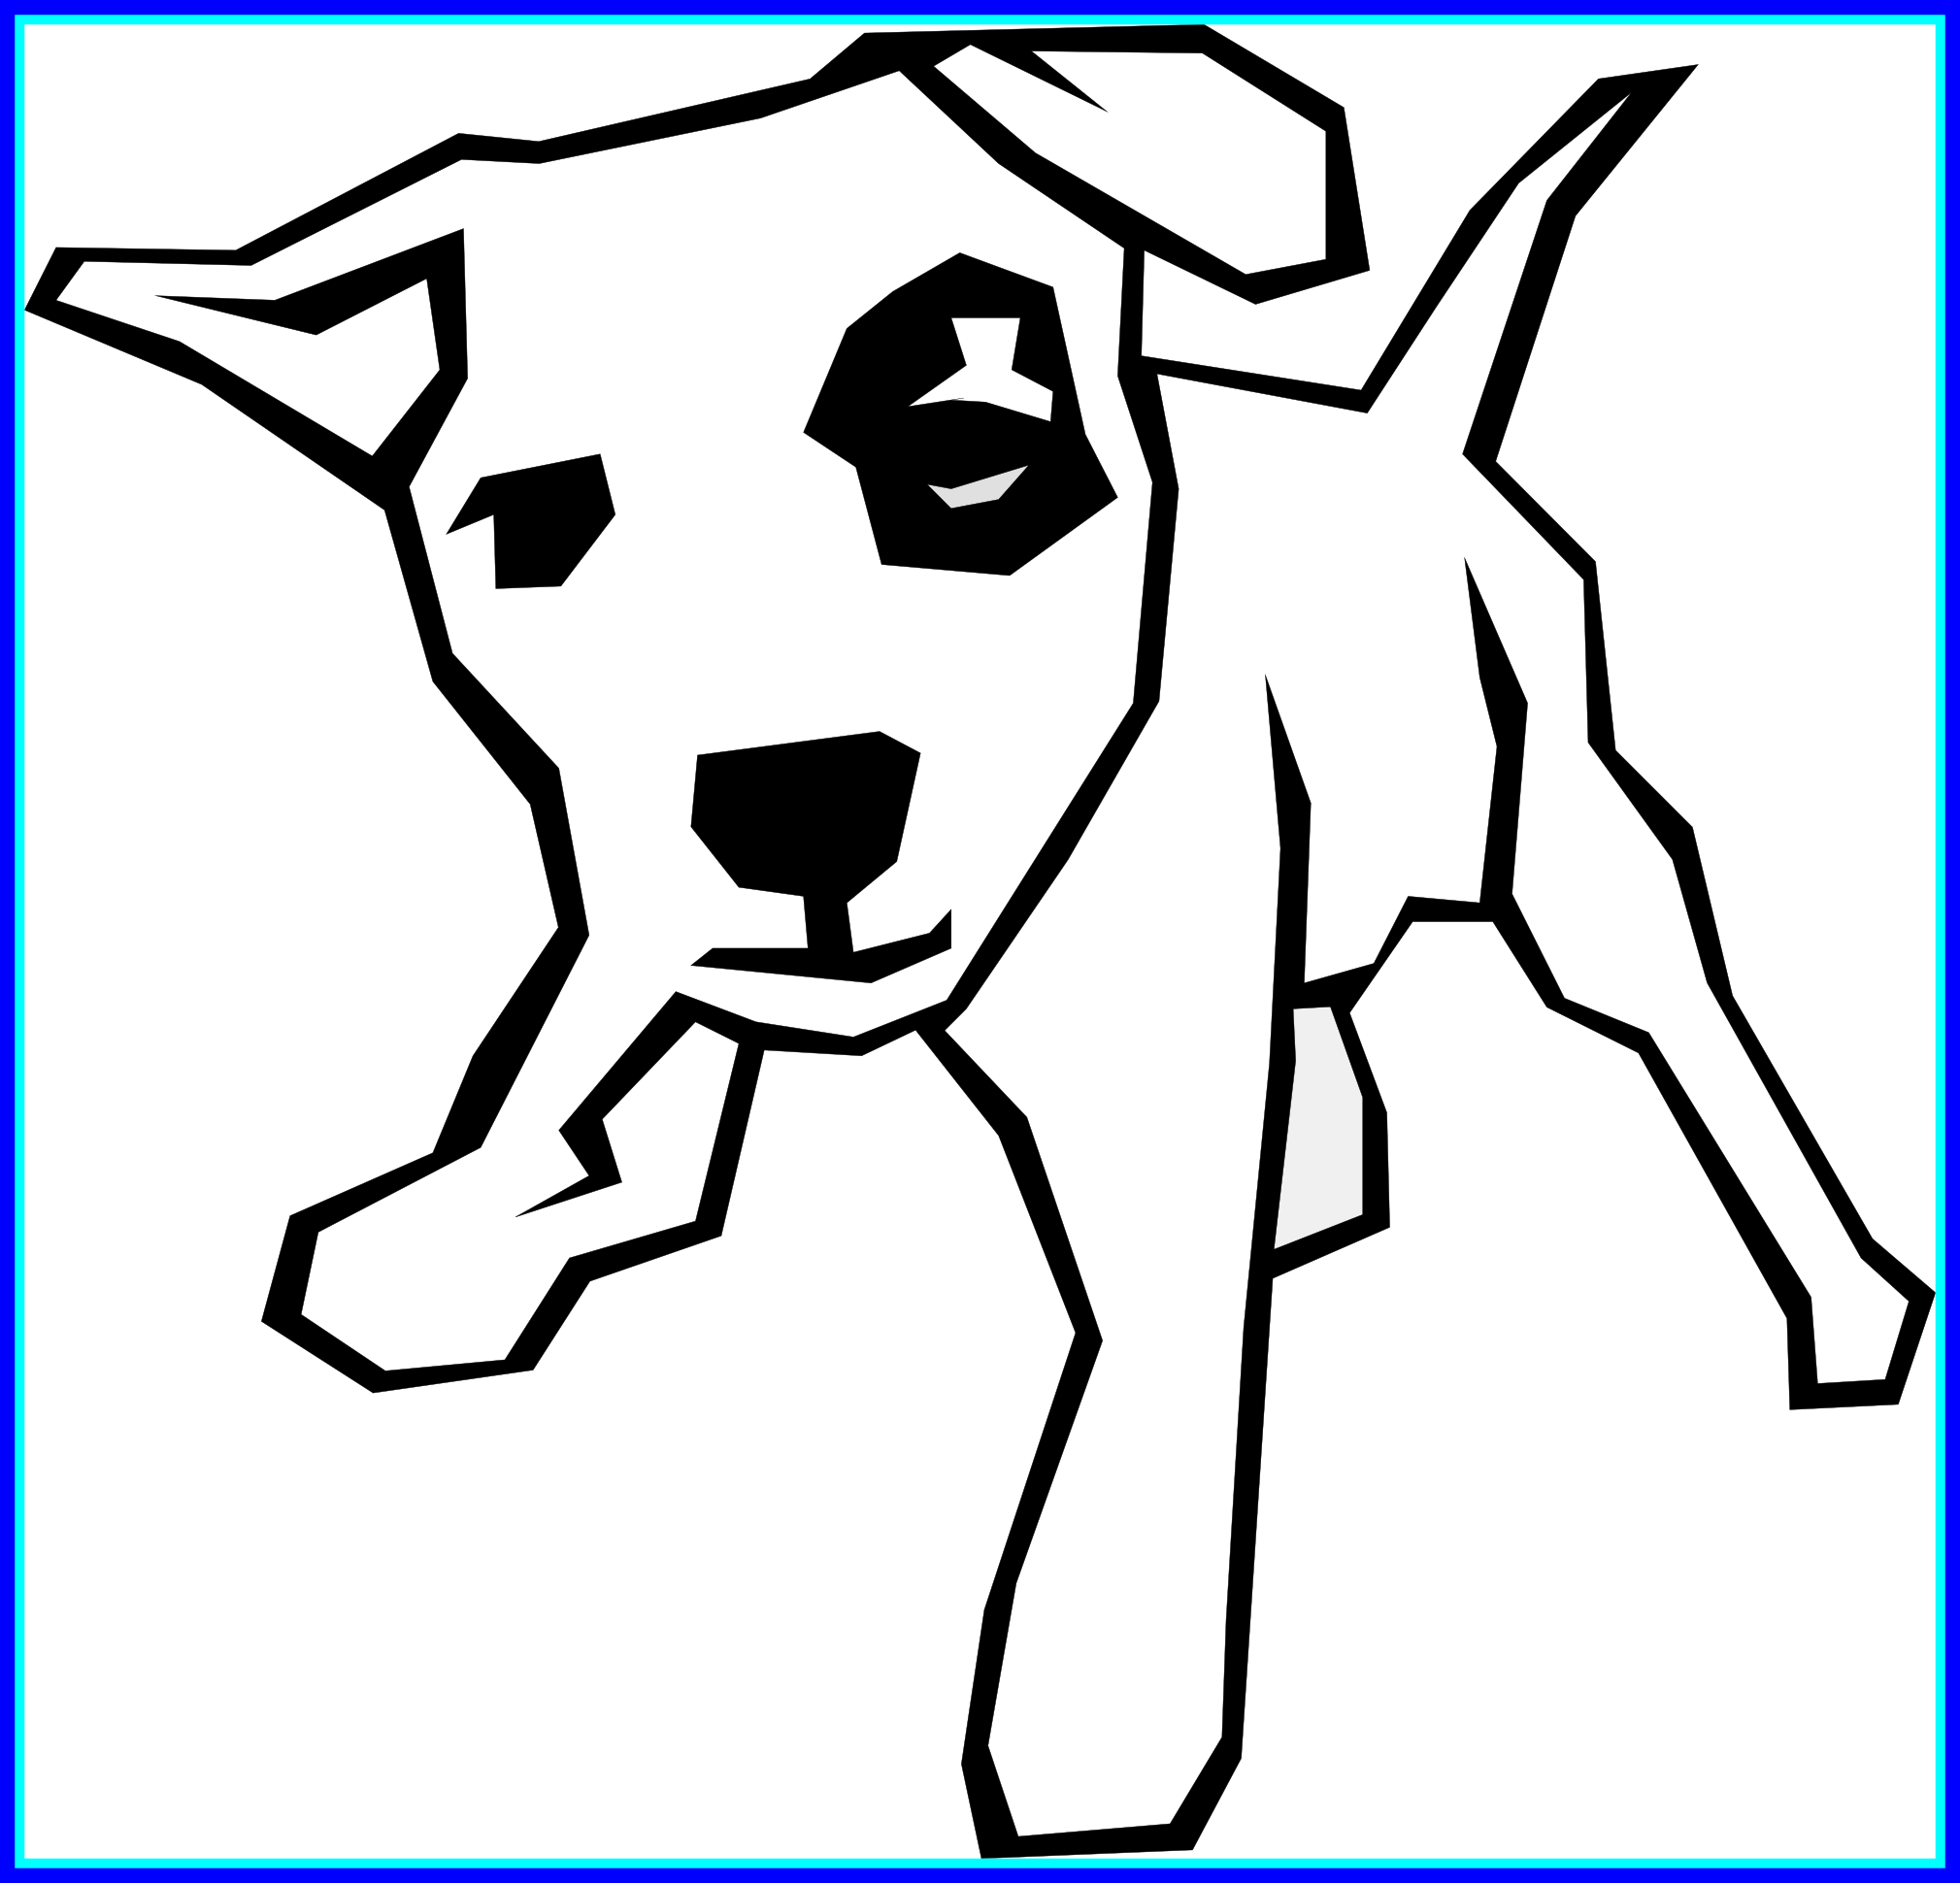 Pitbull clipart angry. Astonishing outline pencil and